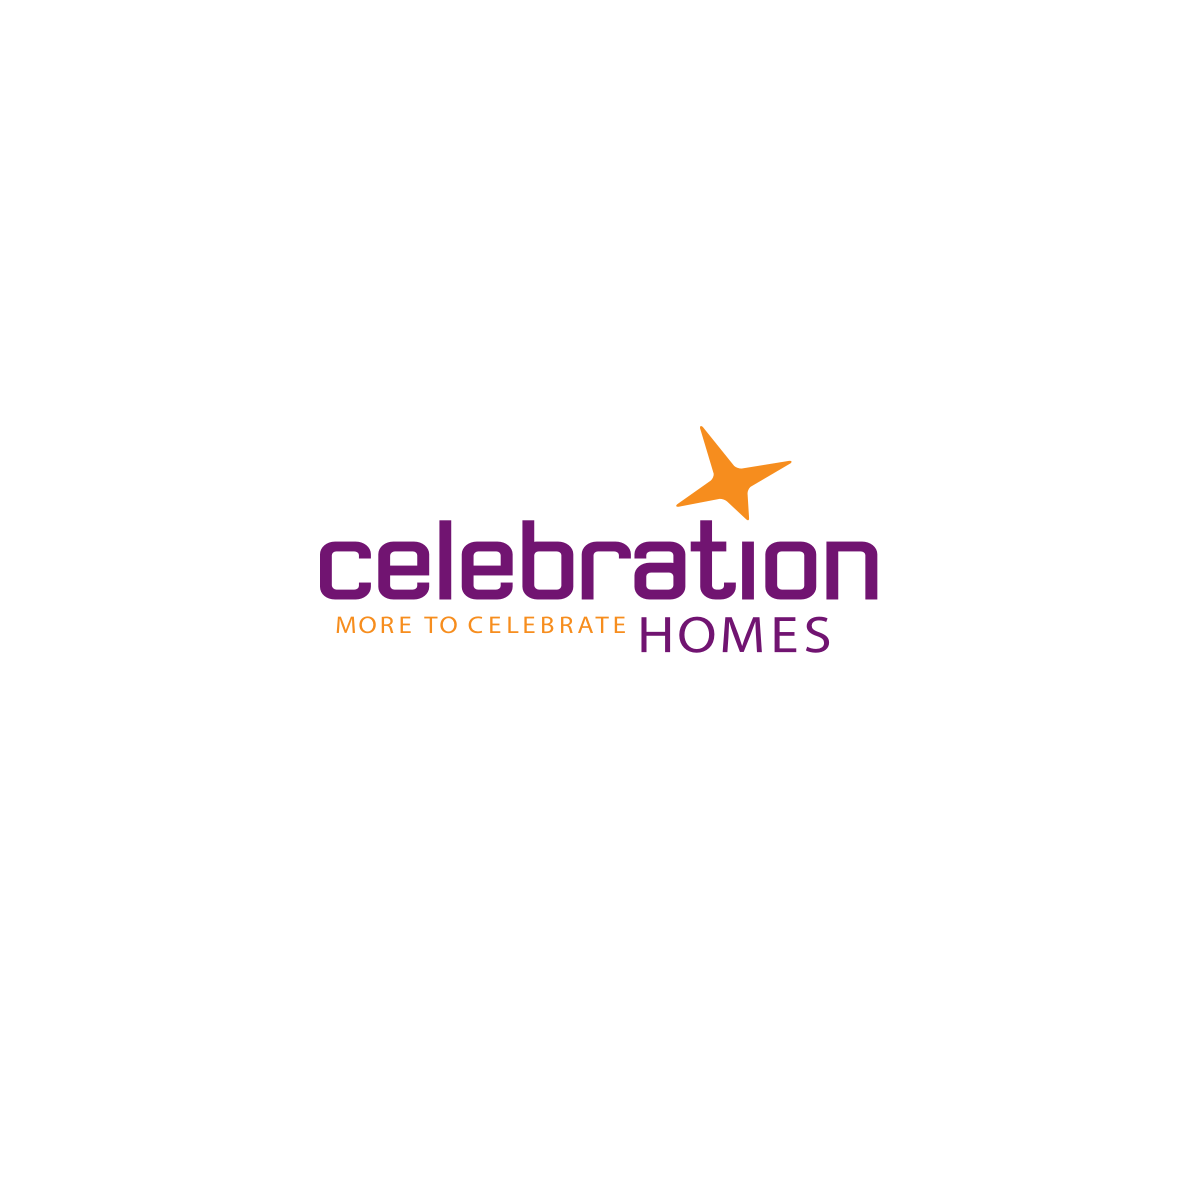 Contact Us - Celebration Homes